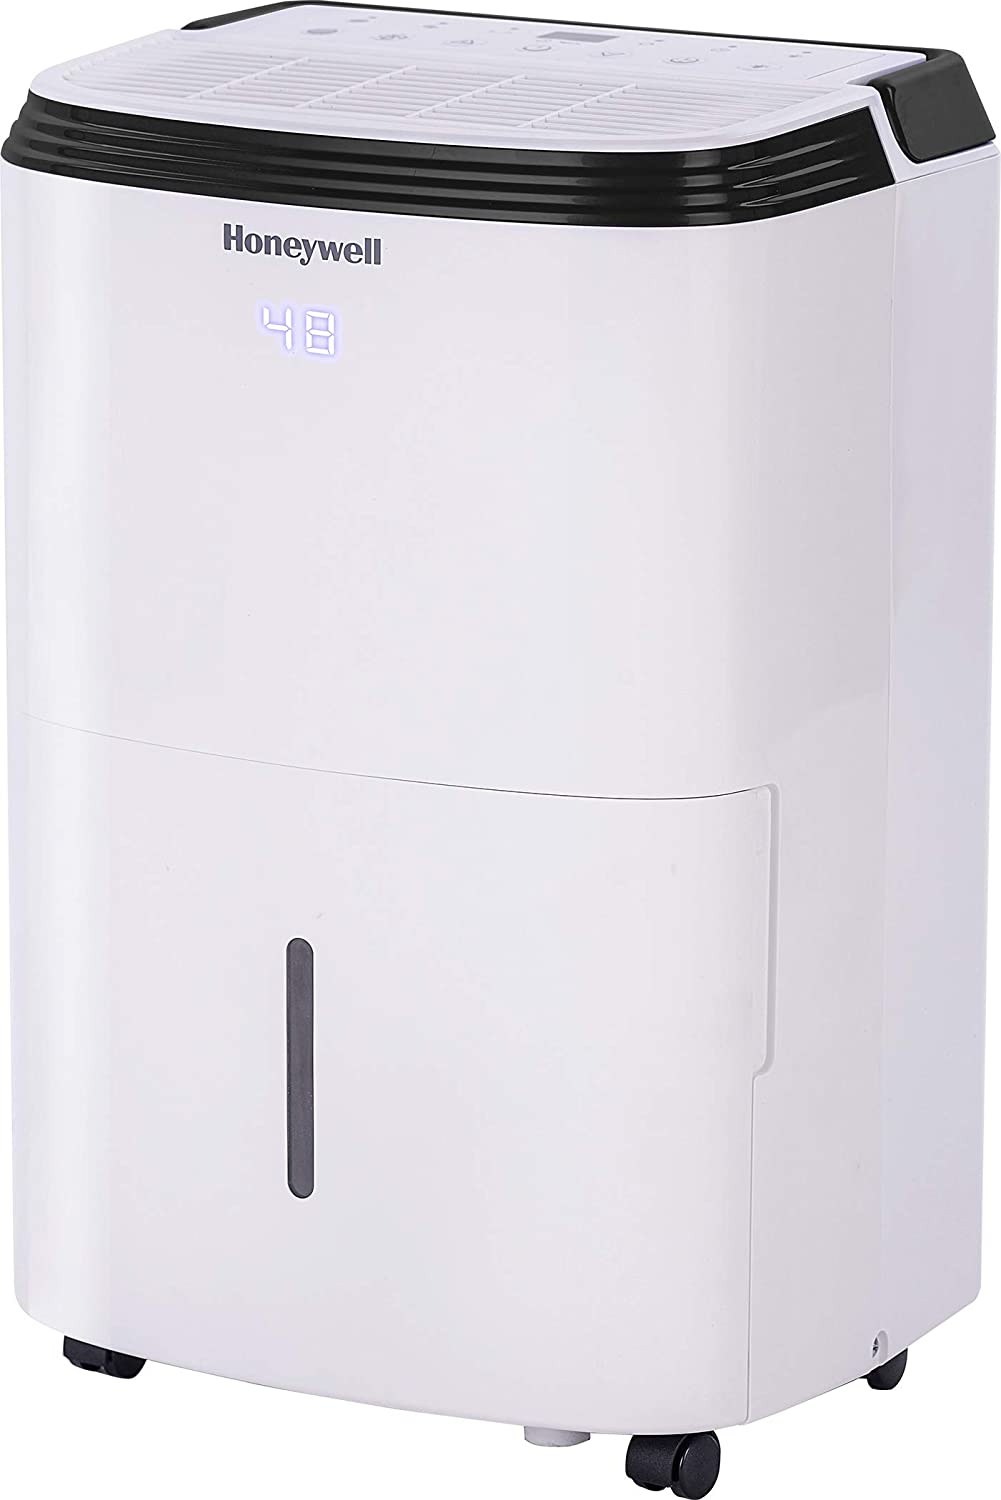 Honeywell, White TP50WK Energy Star Dehumidifier Review